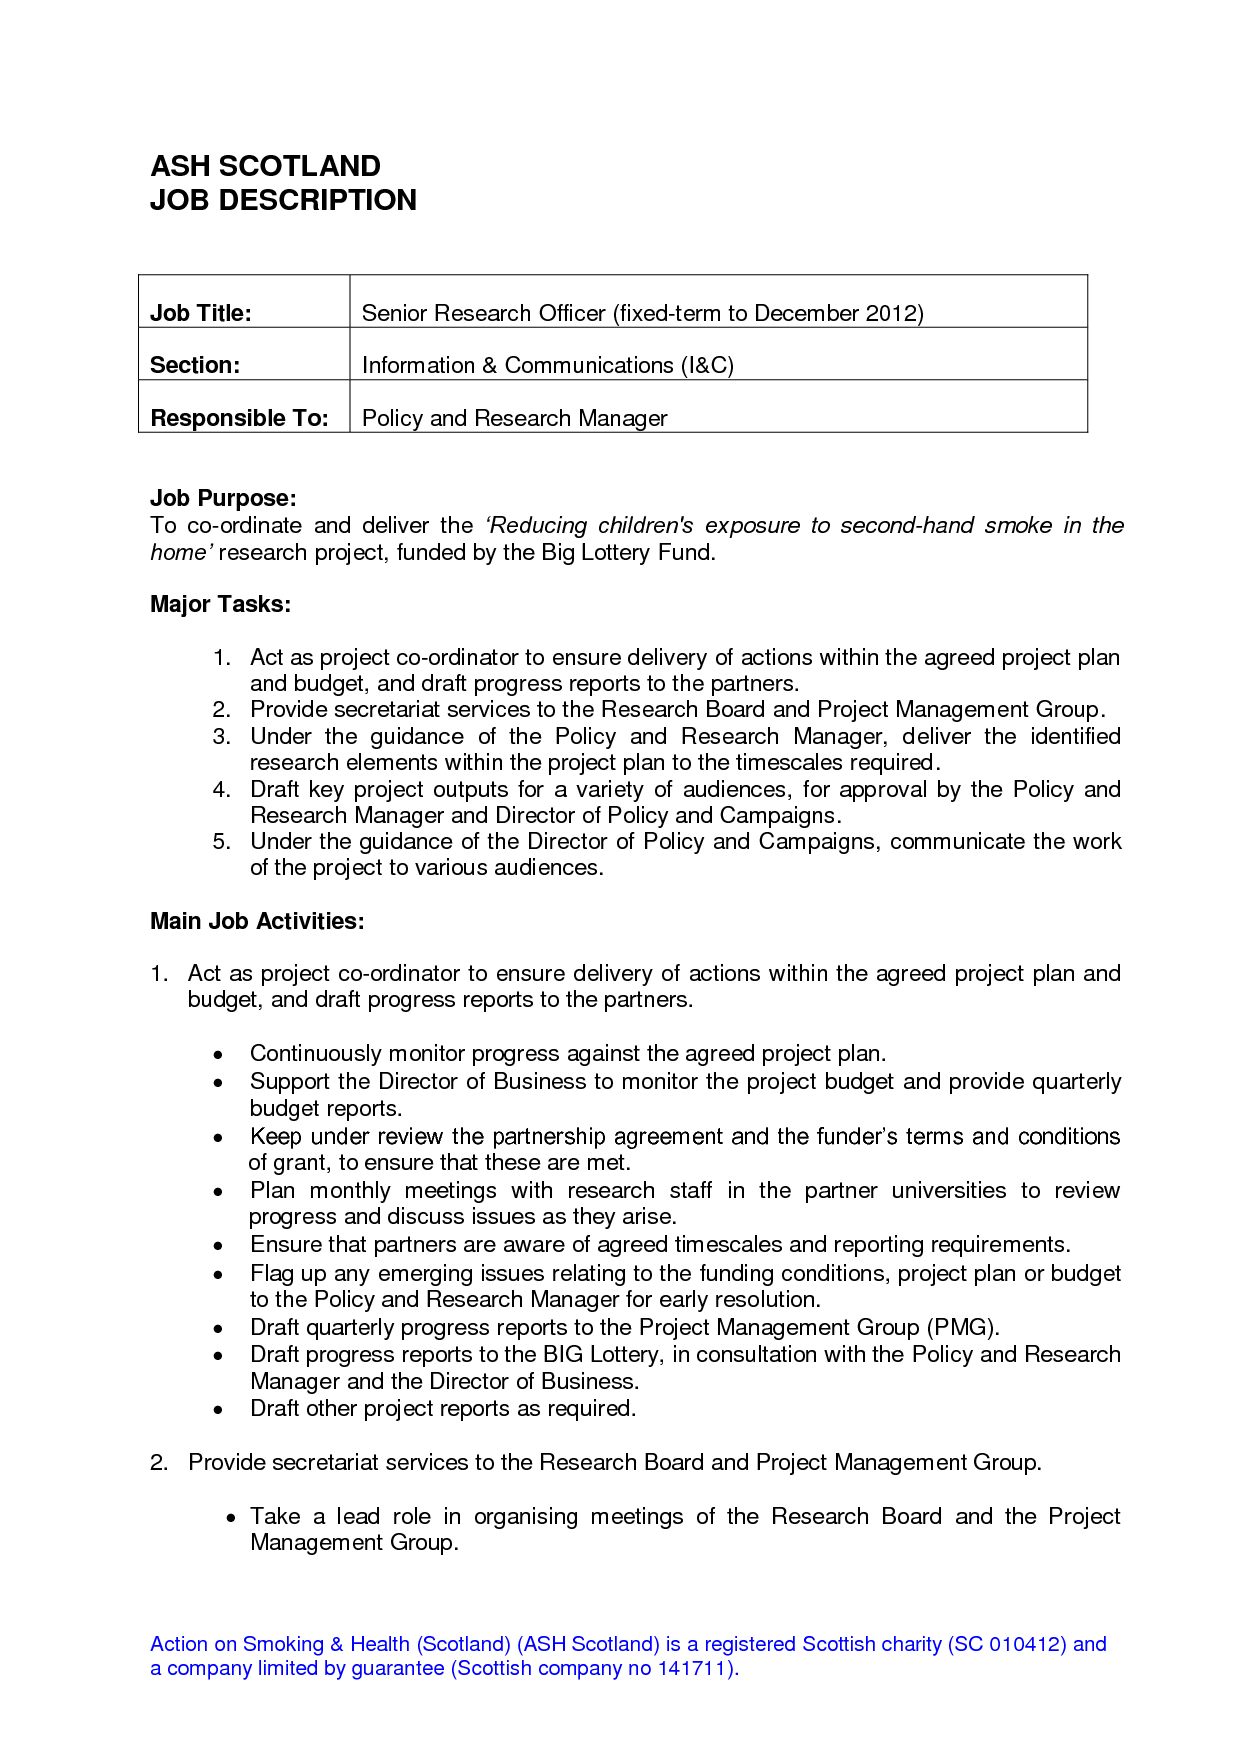 Job Description | Job Description forms | Pinterest | Job description